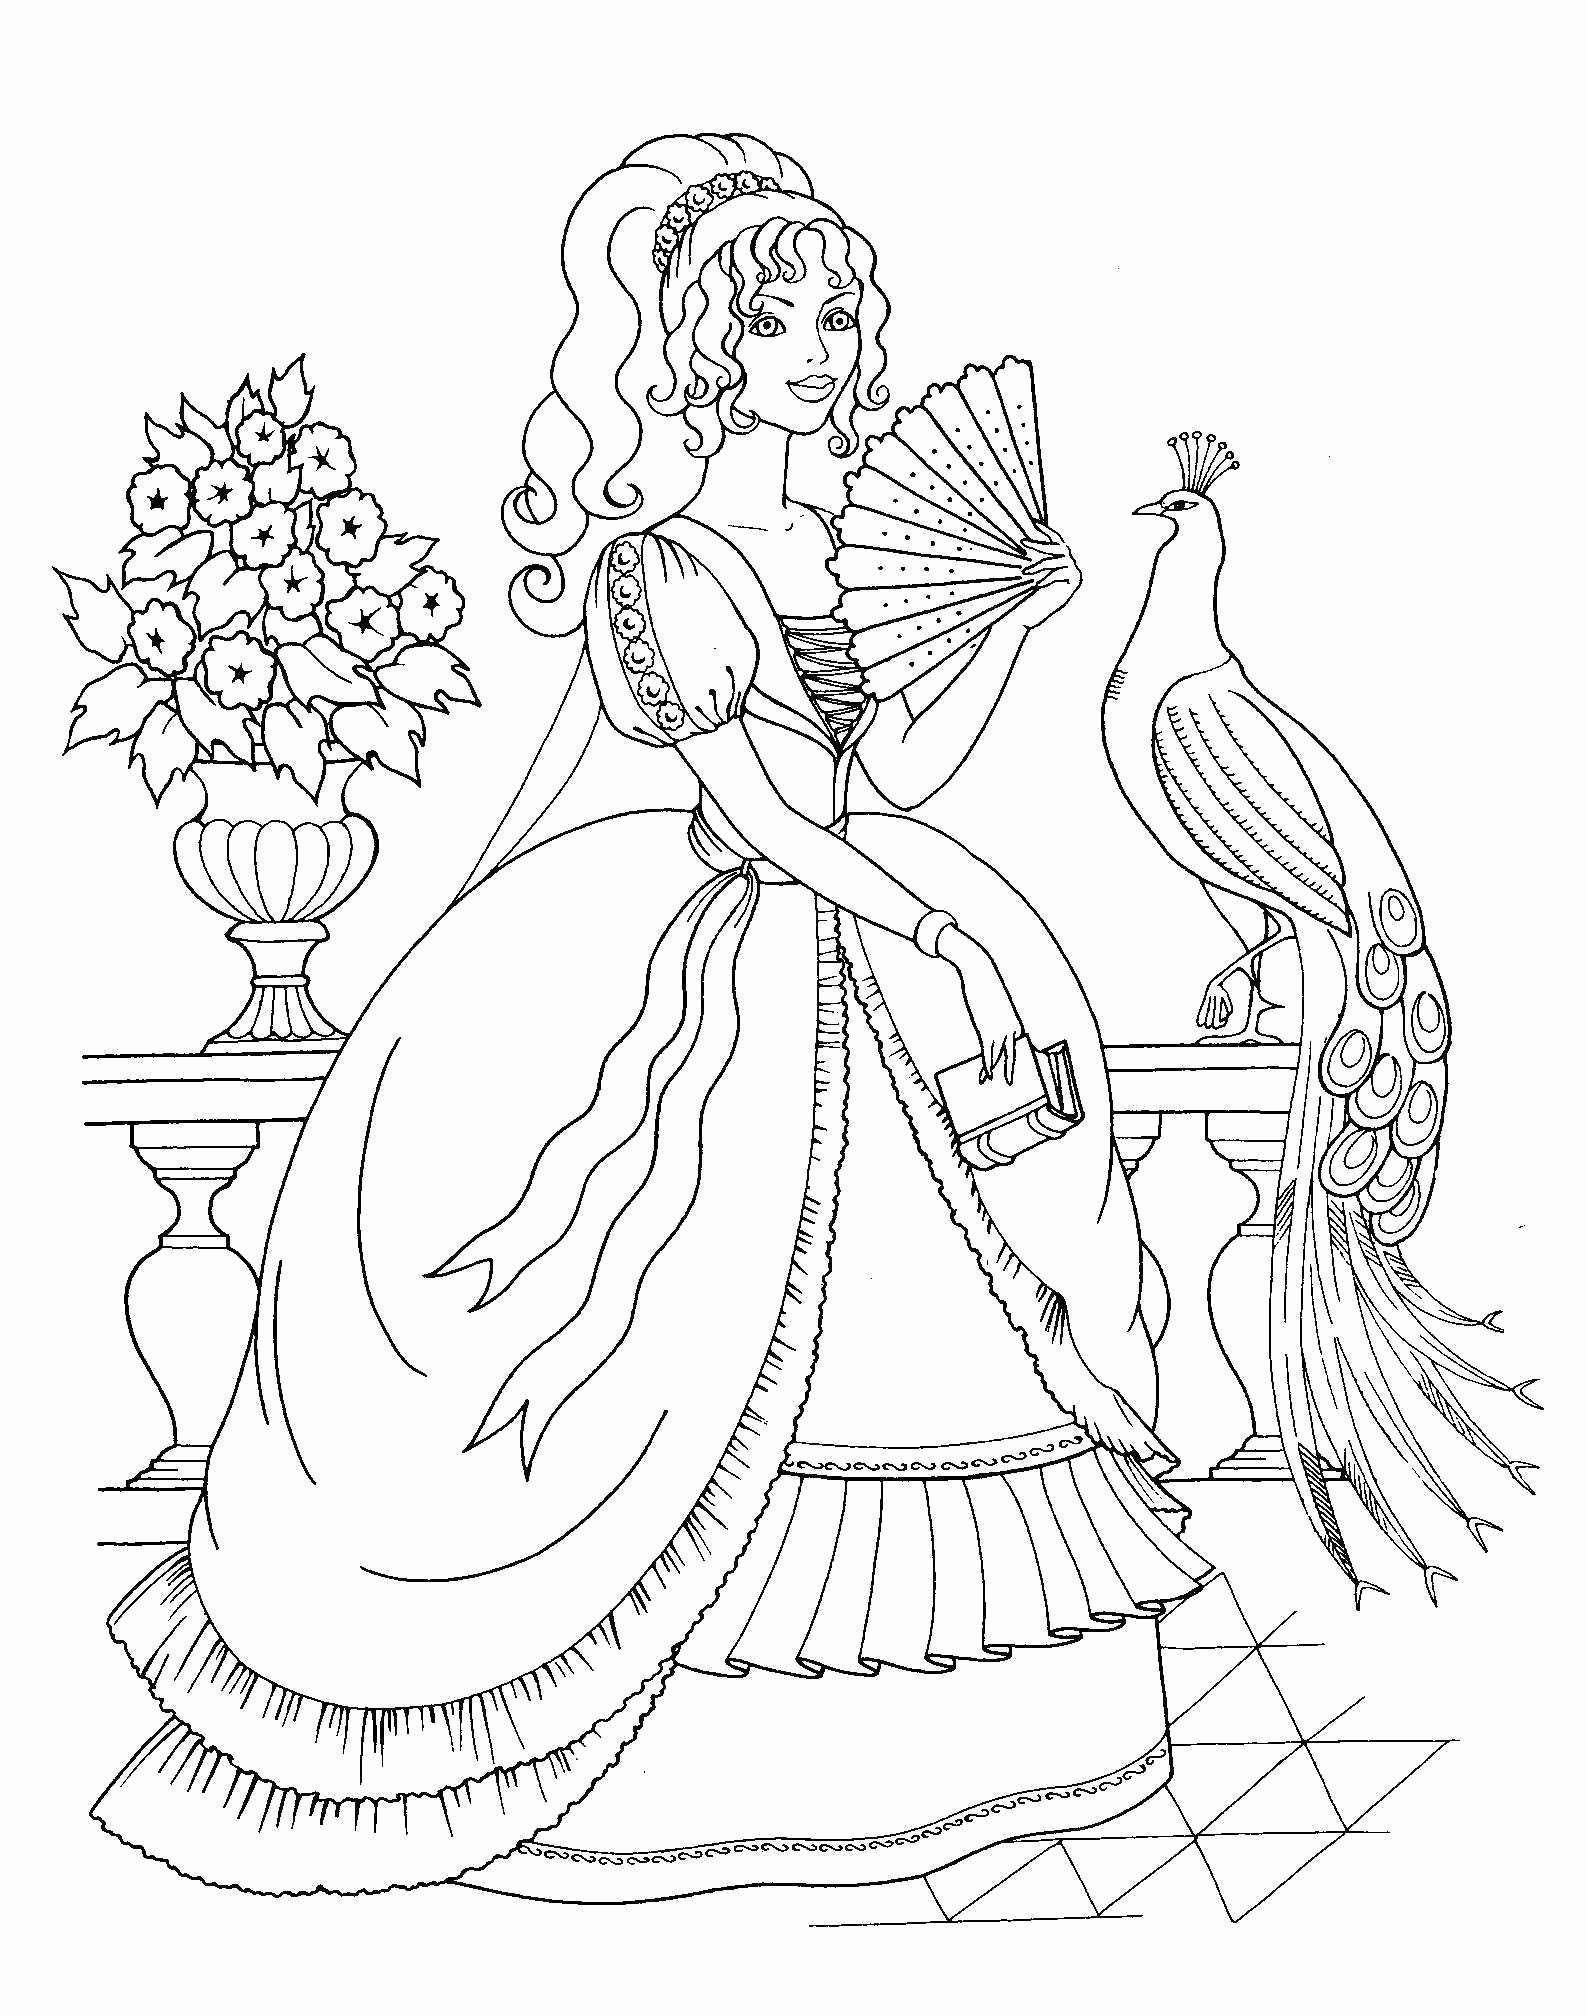 Monkey Coloring Pages For Adults Fresh Elegant Friends